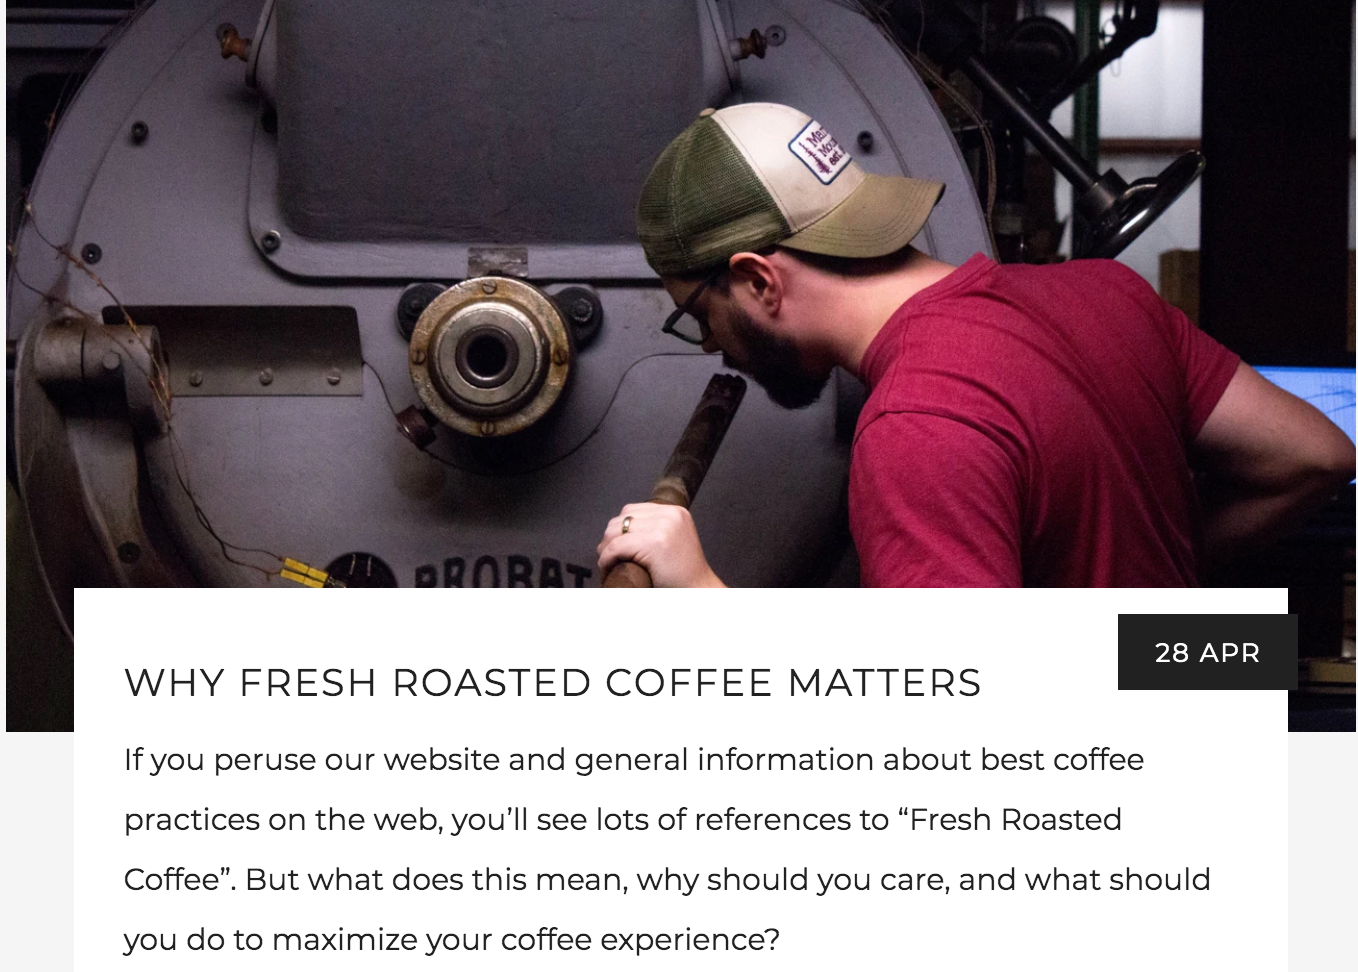 Why Fresh Roasted Coffee Matters Blog, Sniffing the trier of a coffee roaster